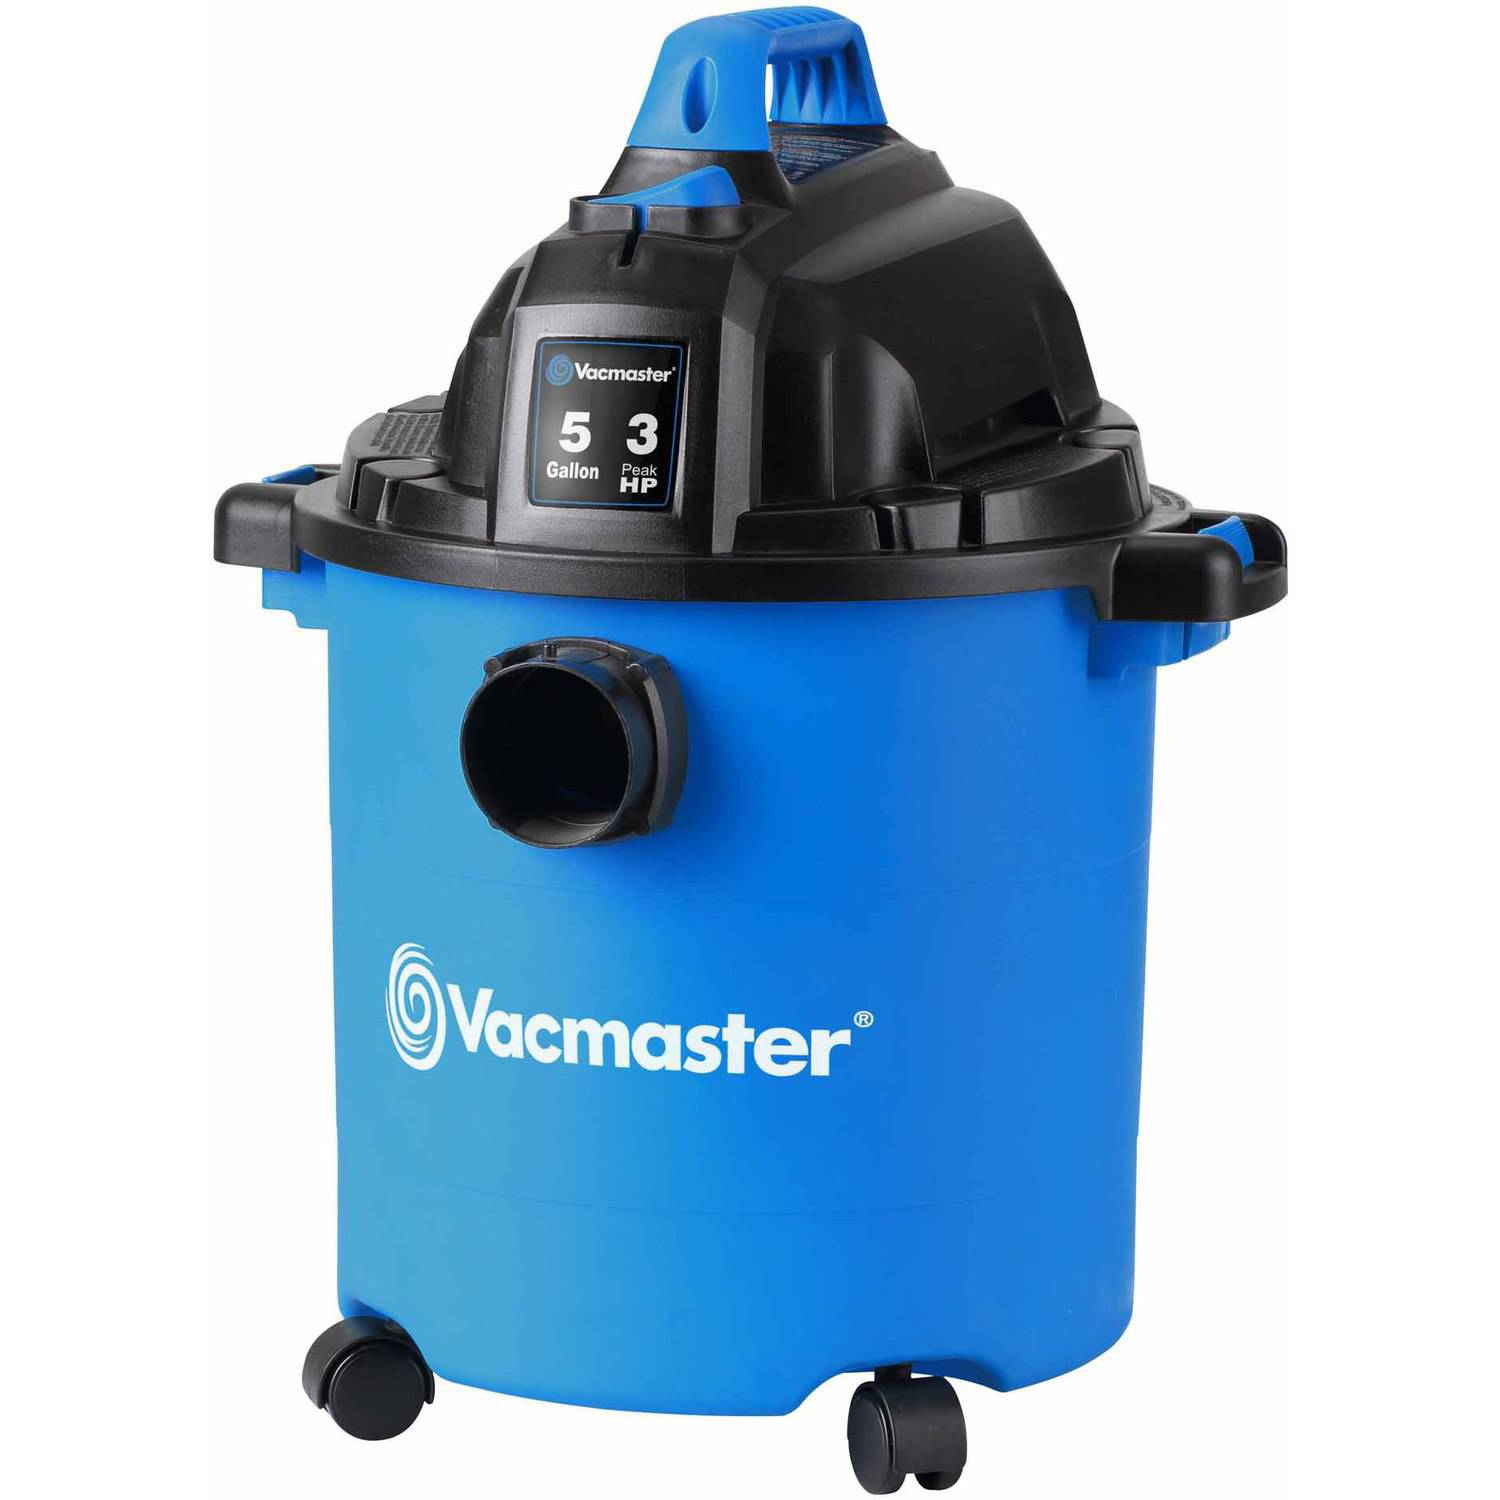 Vacmaster 5-Gallon 3HP Lightweight Wet/Dry Vac, VJC507P